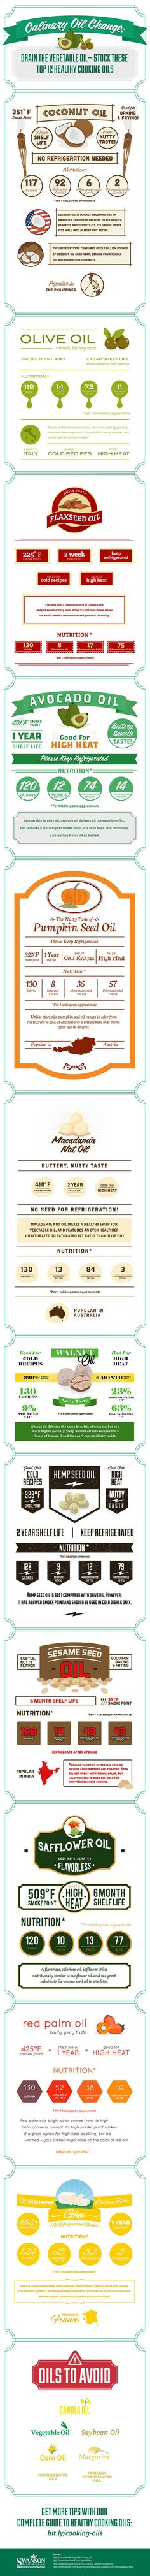 Top 12 Healthy Cooking Oils Infographic More on http://www.authority-nutrition.com